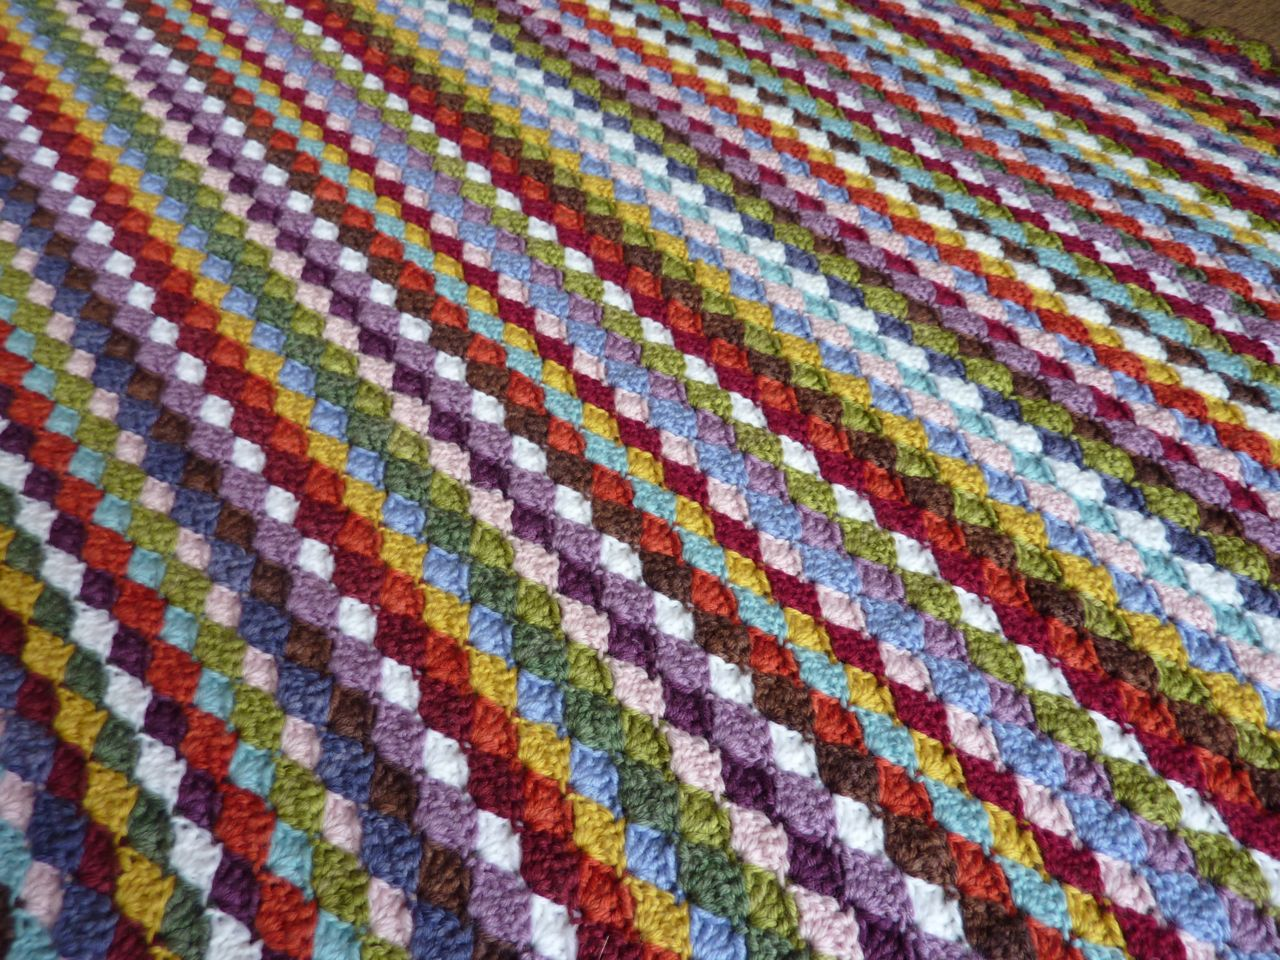 Crochet Blanket Edgings Crochet Guild